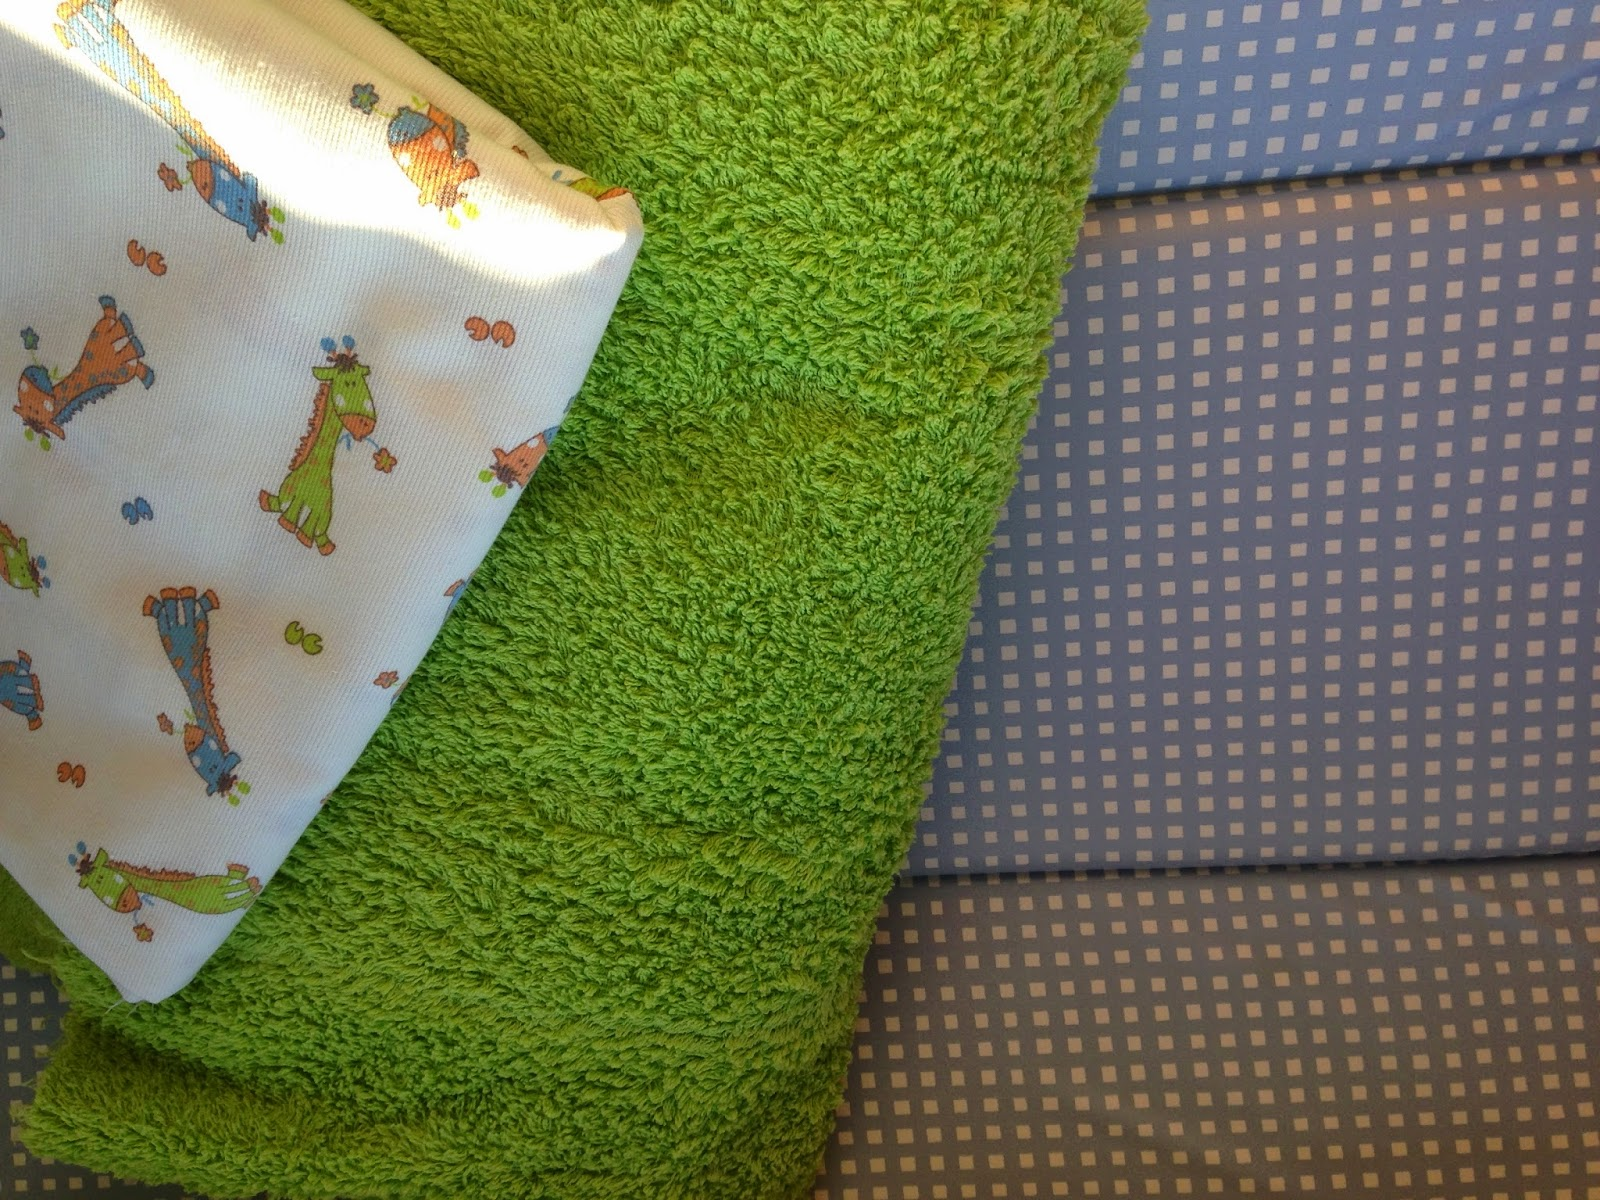 Changing table cover materials